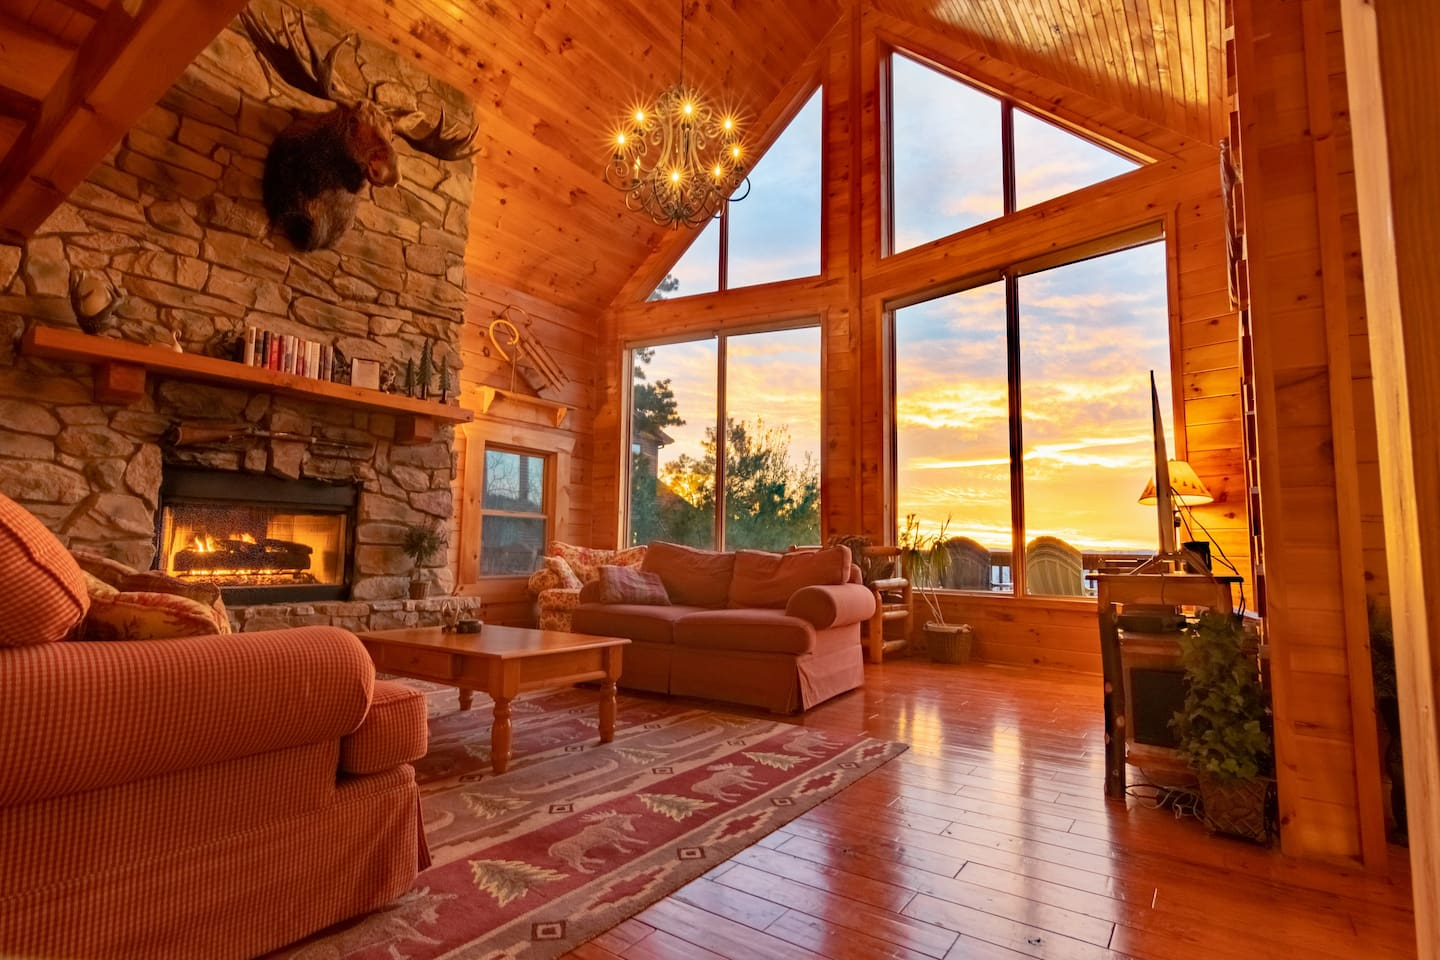 Stunning log home at the top of a mountain overlooking the Blue Ridge range, with skiing, golf, hiking, zip lines, go carts, a water park, wineries, Monticello, University of Virginia, James Madison University, and so much more nearby!